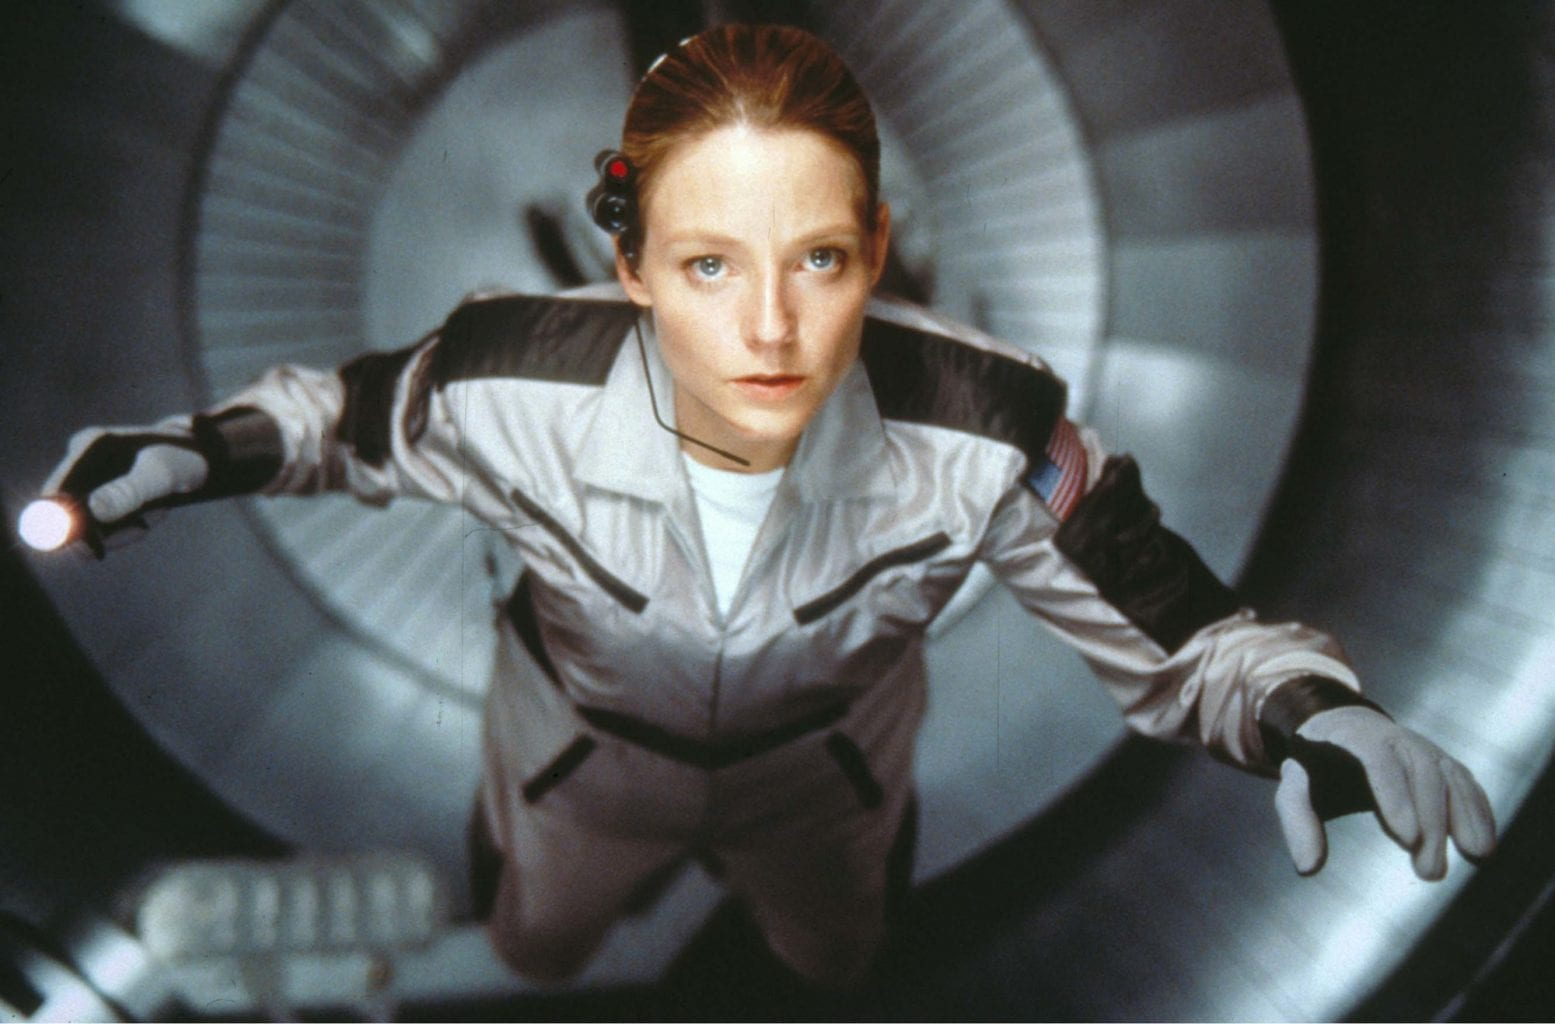 Jodie Foster in the incredible space-themed movie Contact. Credit: Warner Bros